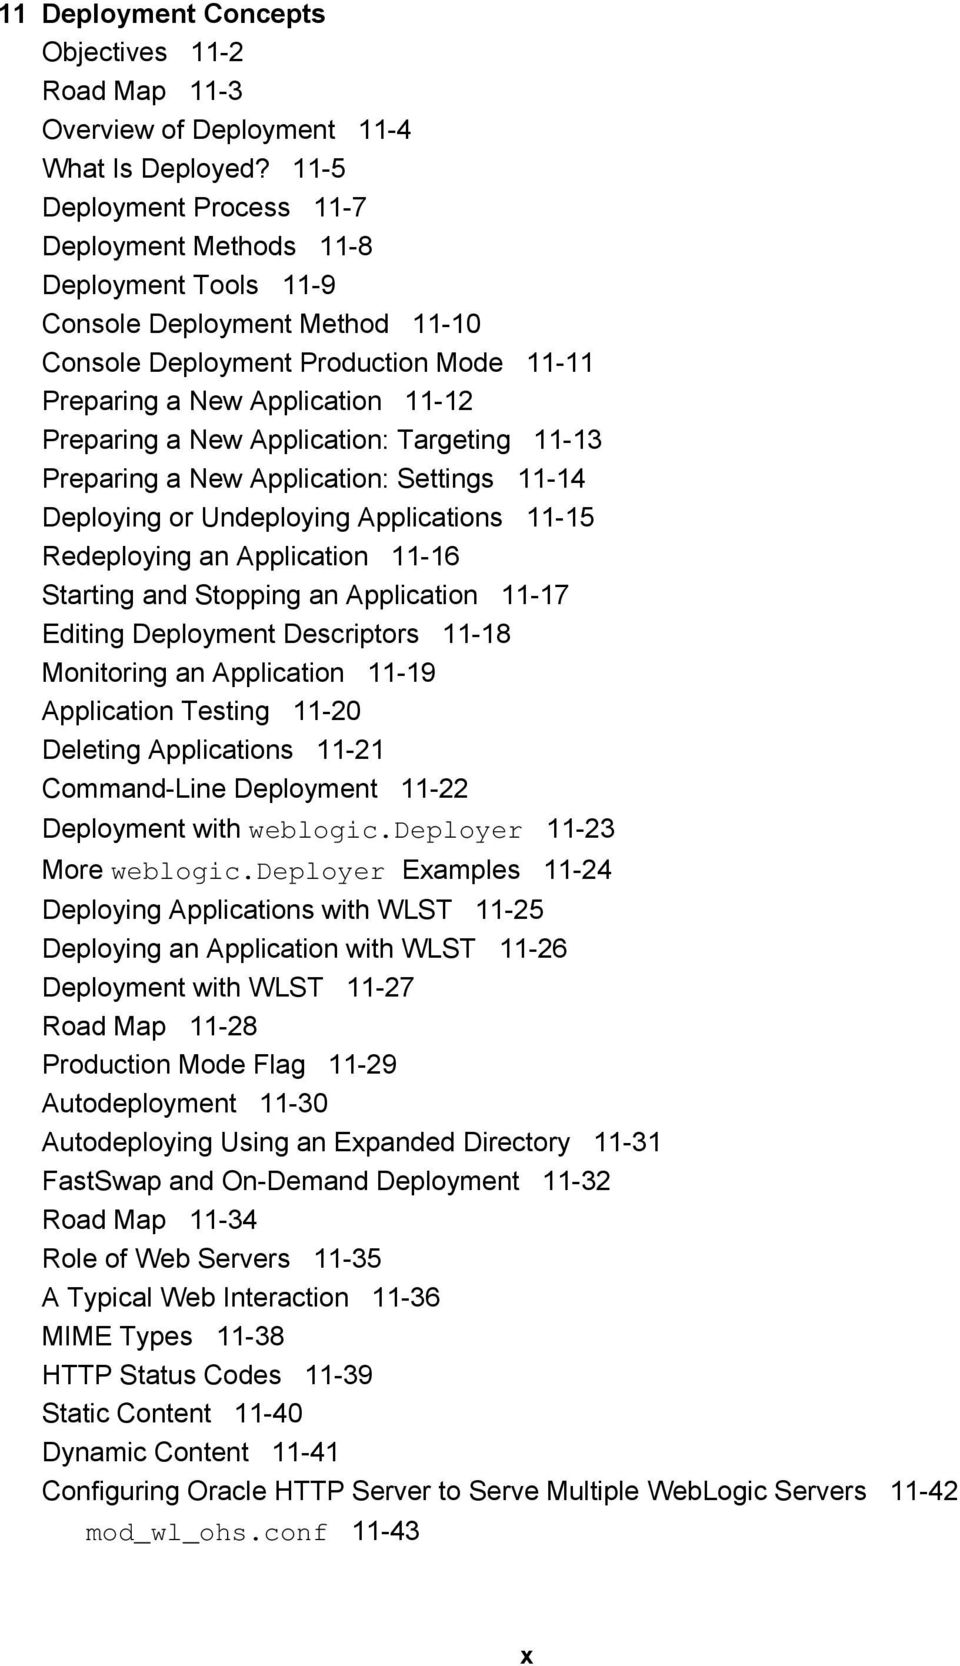 Application: Targeting 11-13 Preparing a New Application: Settings 11-14 Deploying or Undeploying Applications 11-15 Redeploying an Application 11-16 Starting and Stopping an Application 11-17